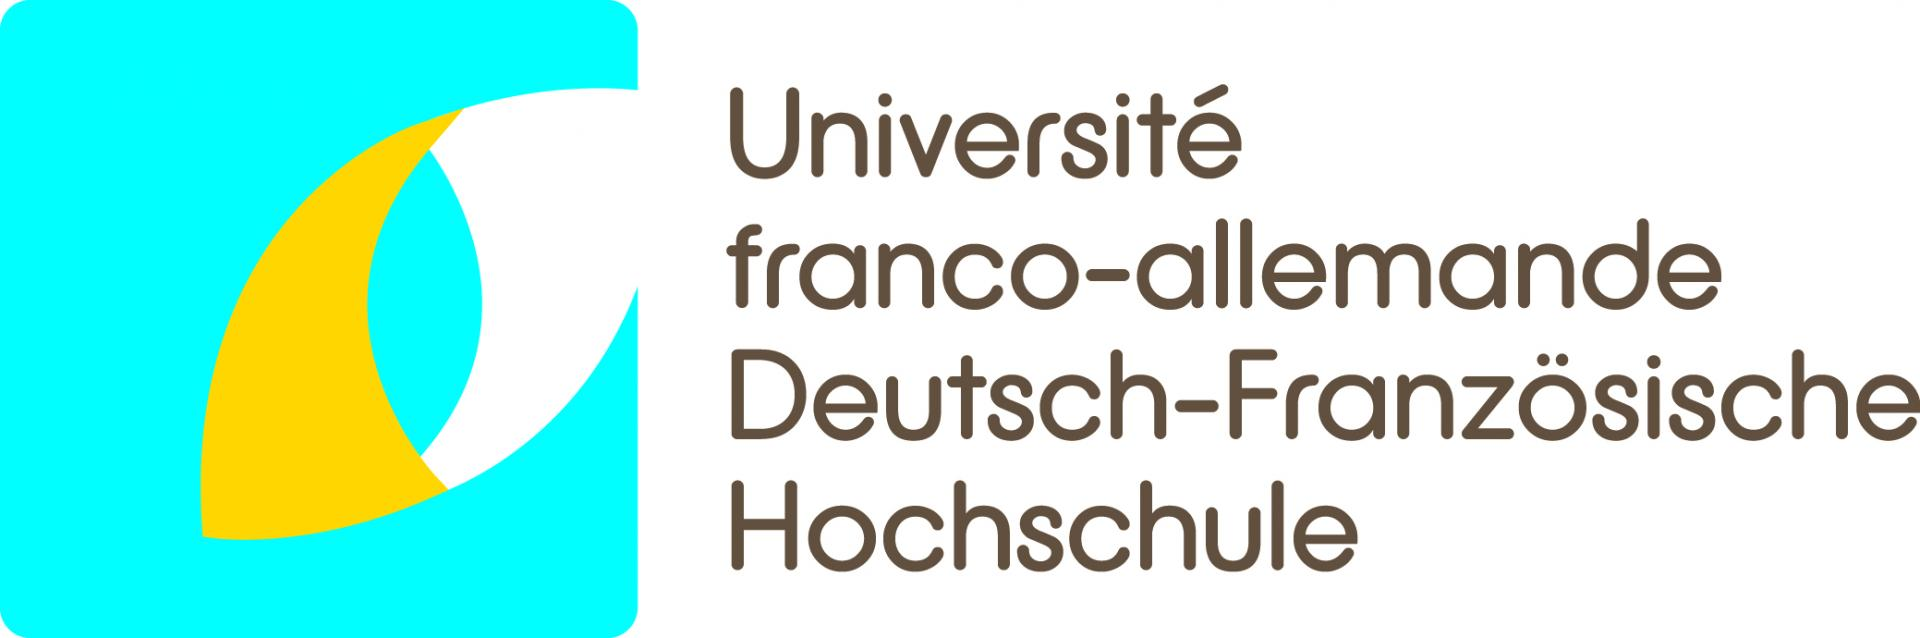 ... universities; The program benefits from the recognition and the support  of the Université franco-allemande | Deutsch-Französische Hochschule.